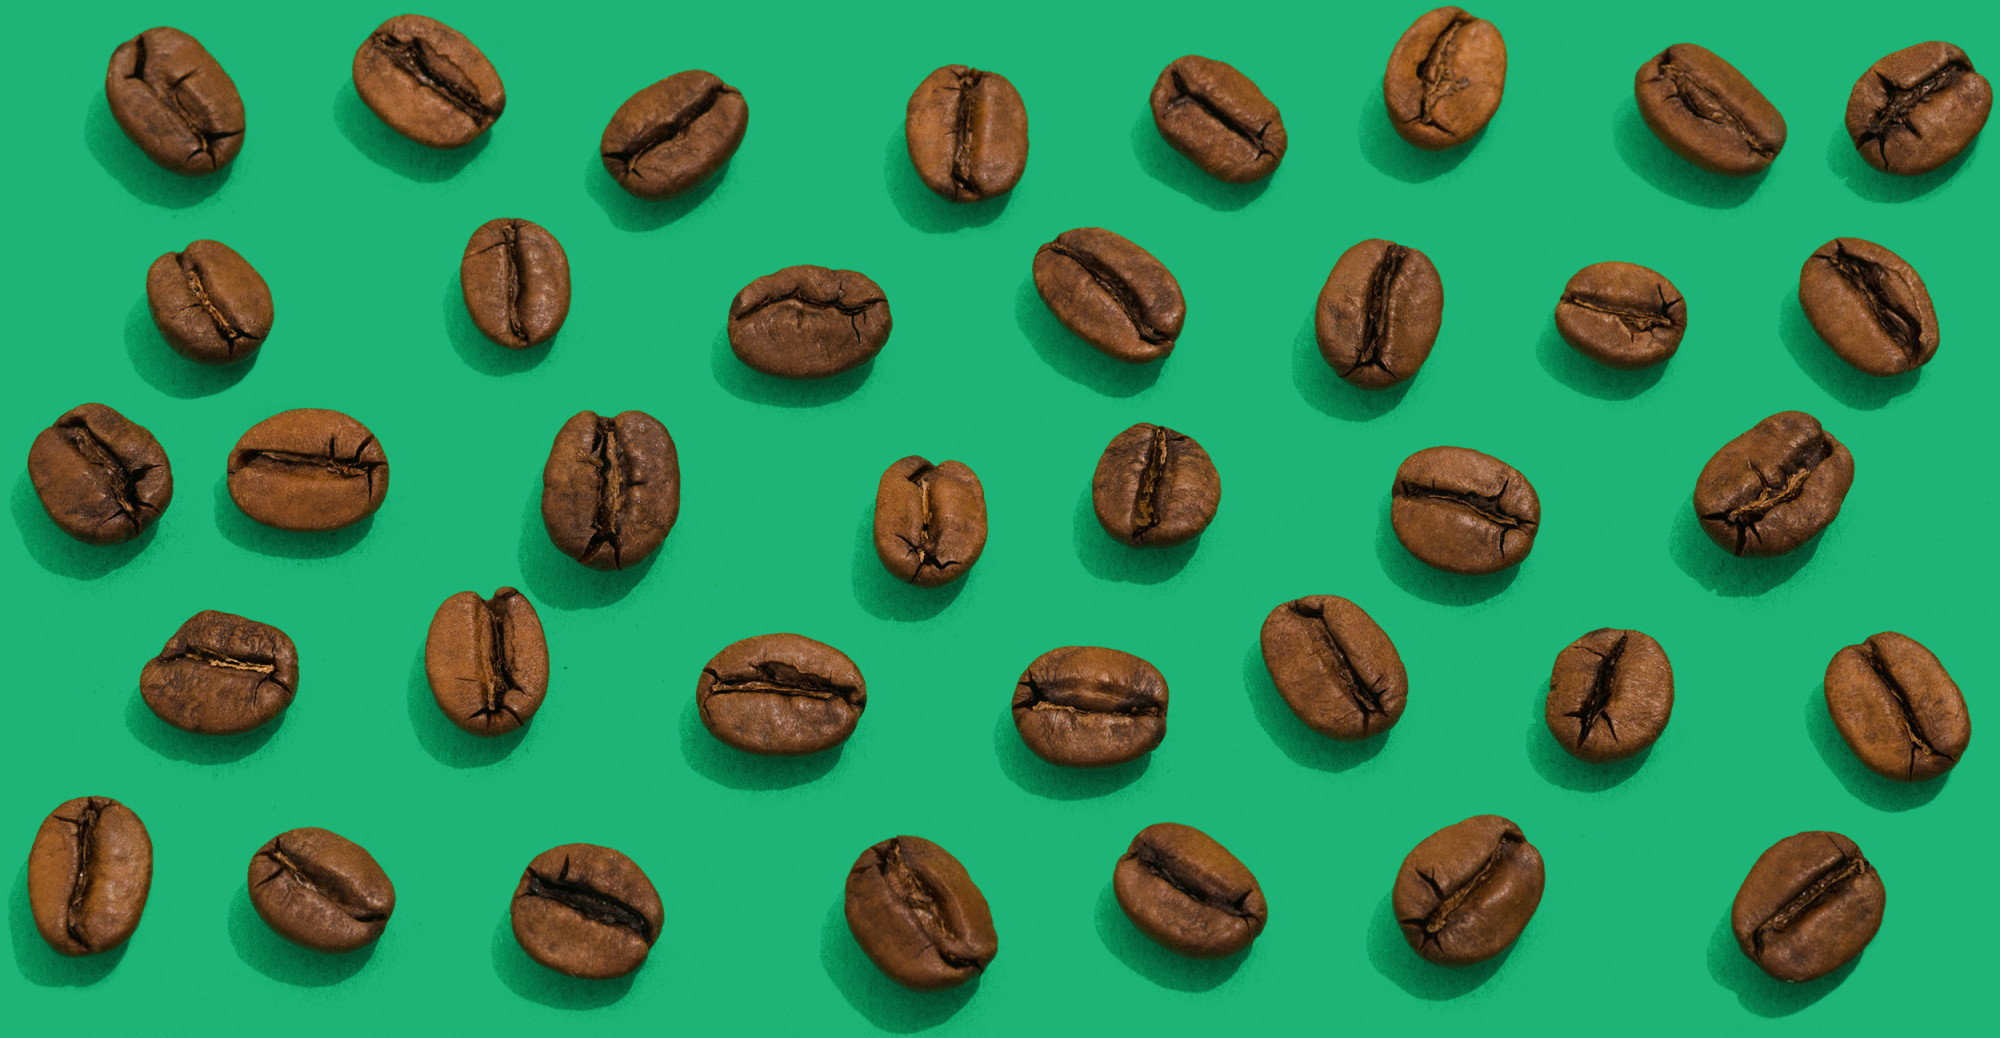 slurp-890-Edit-2-vertically-and-horizontally-continuous-2500- coffee beans on green background